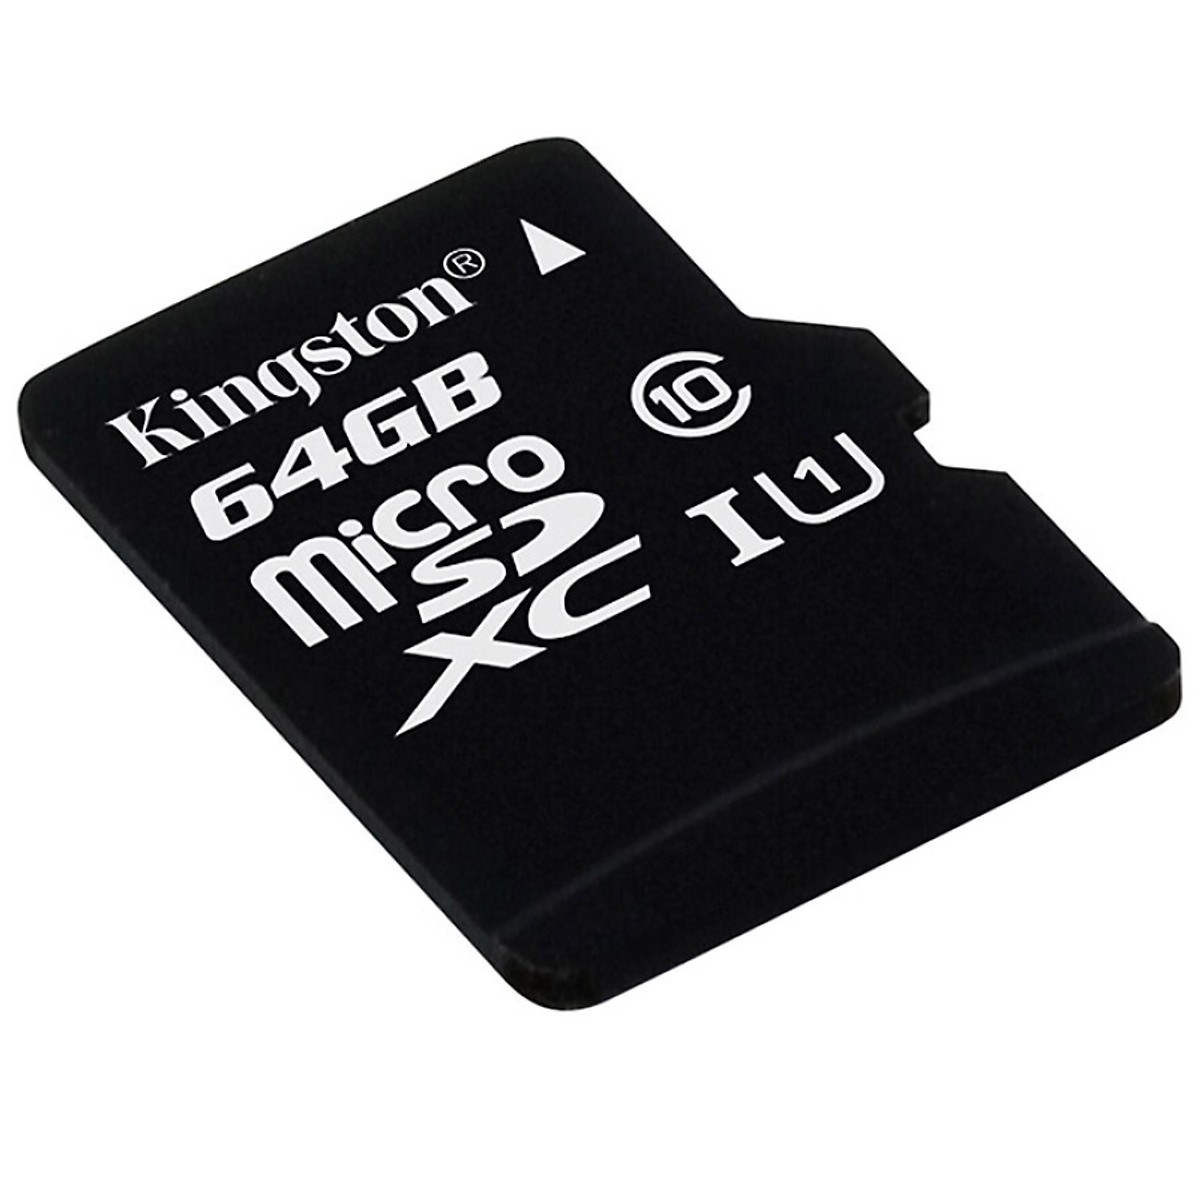 Joy Collection    Thẻ nhớ  Kingston TF (Micro SD) memory card U1 C10 high-speed upgrade version for